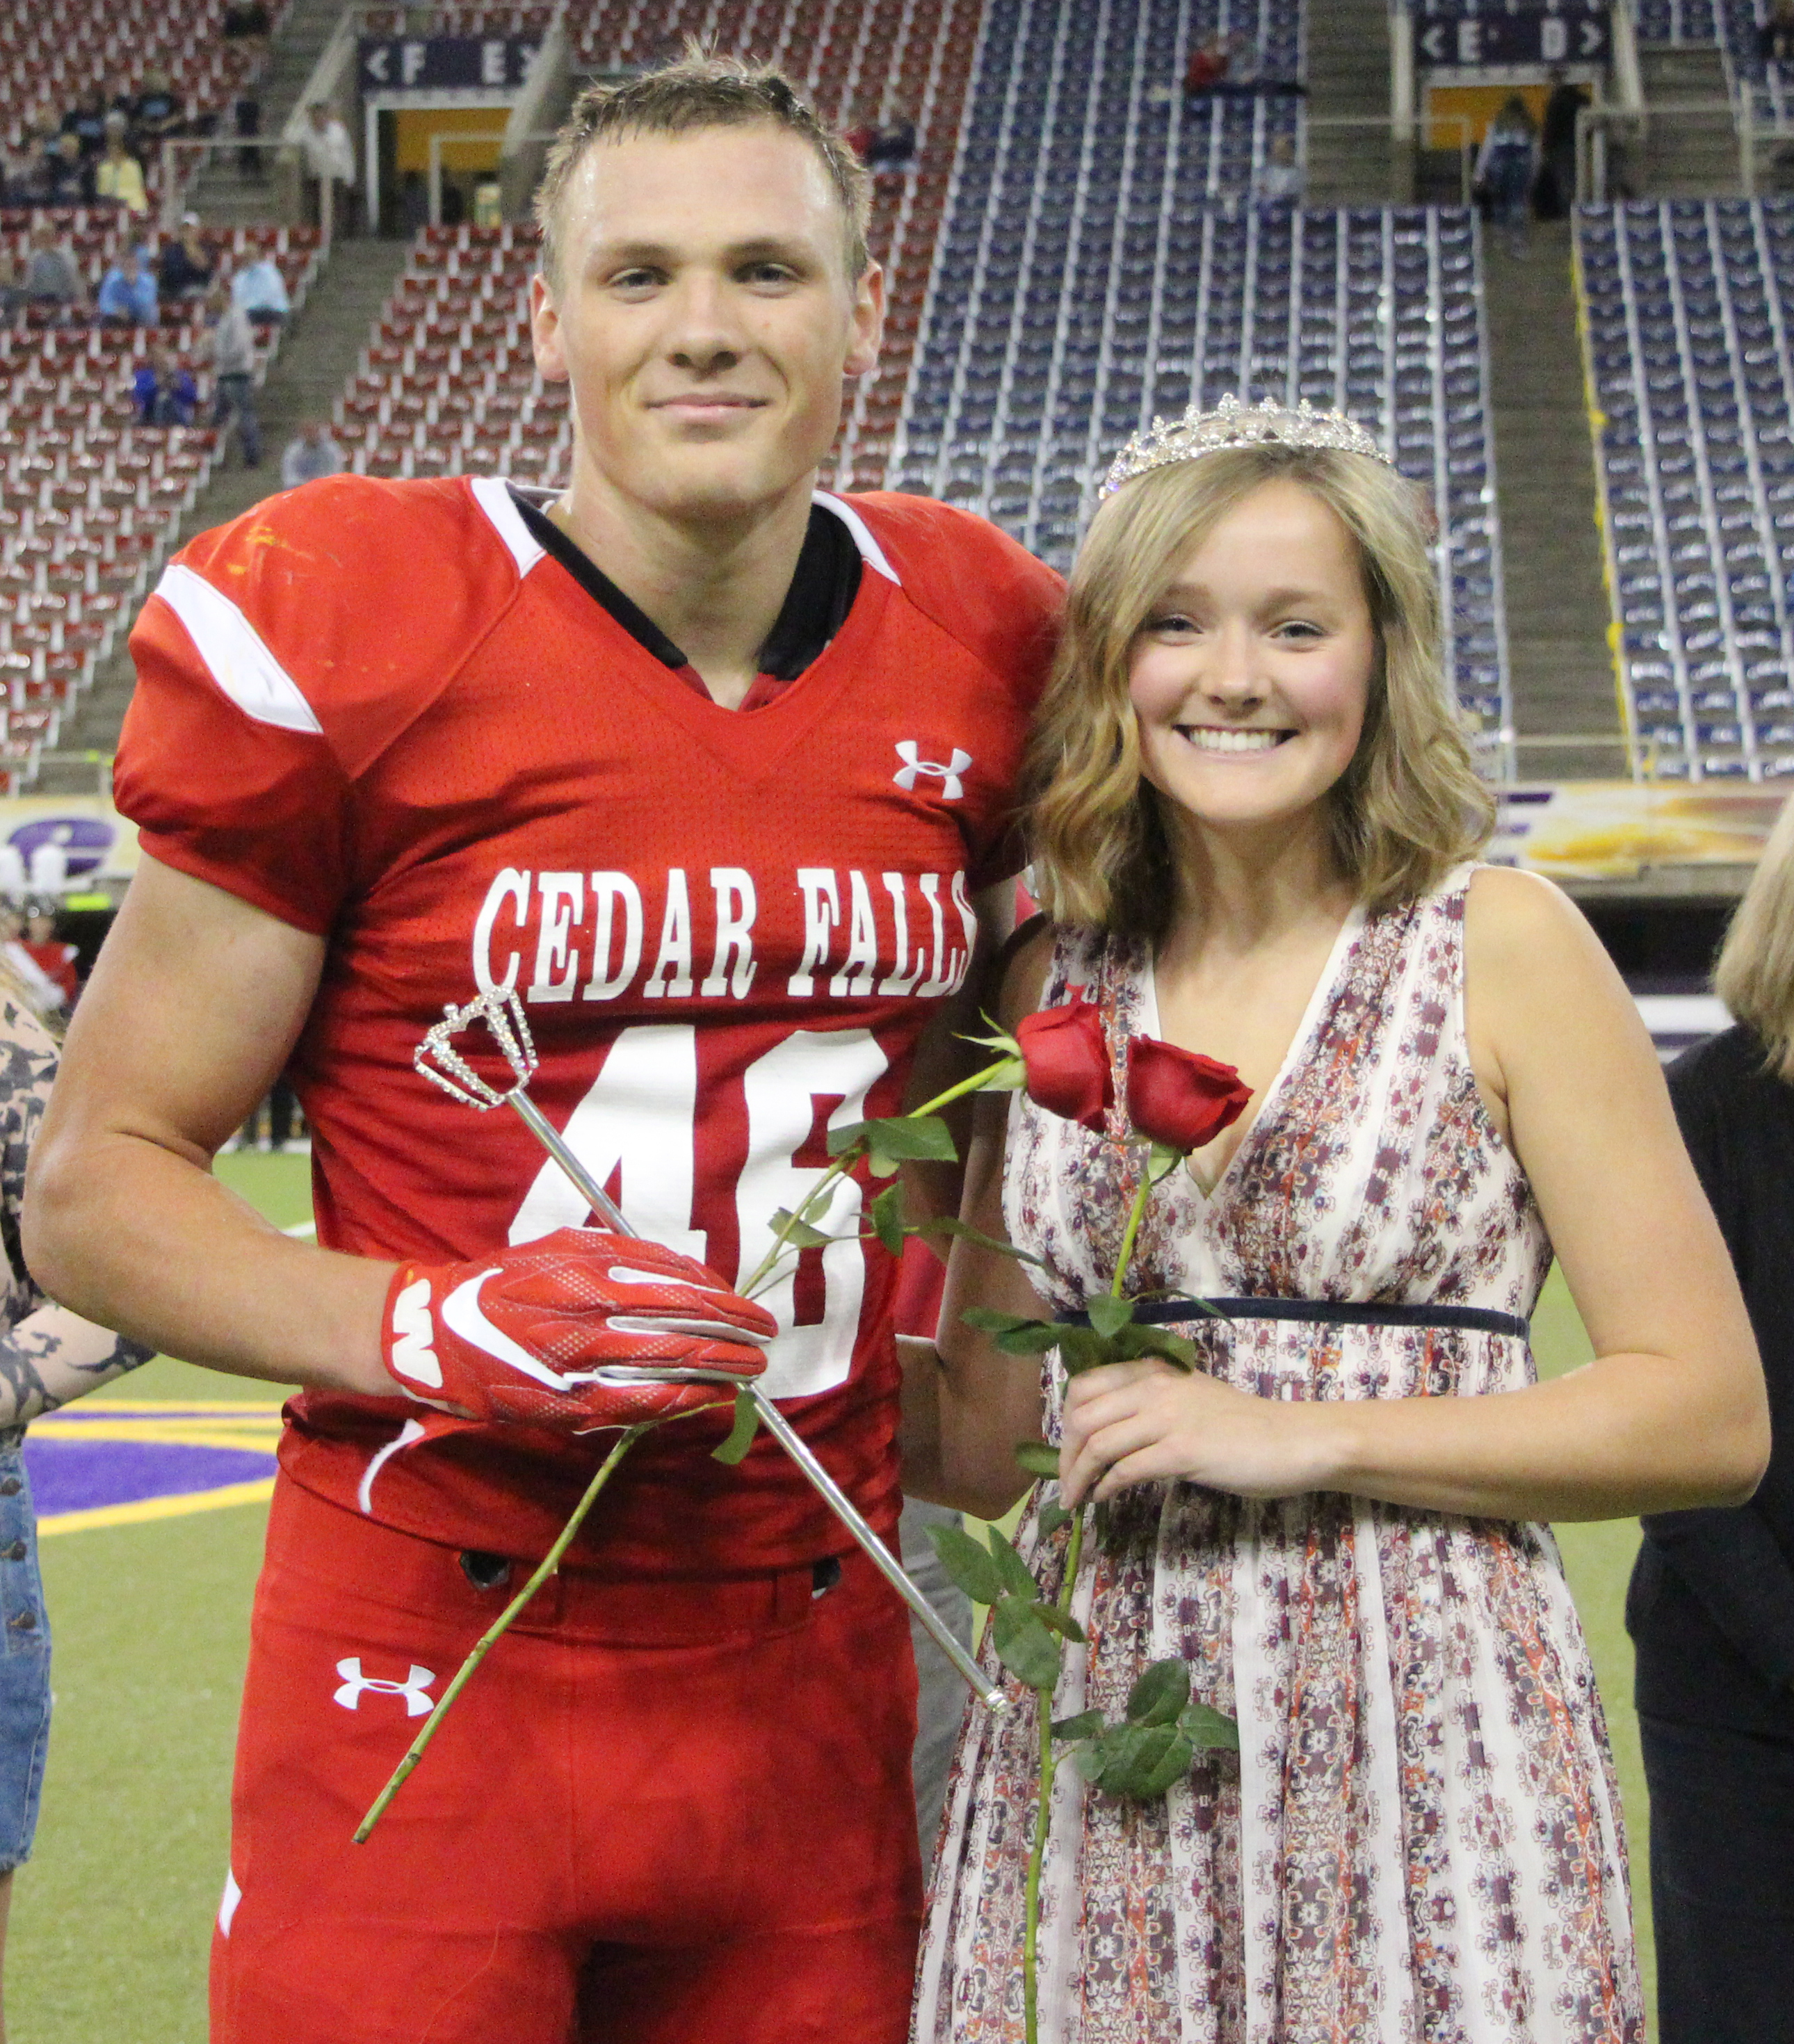 Megan Sawyer and Jack Campbell are crowned homecoming king and queen.